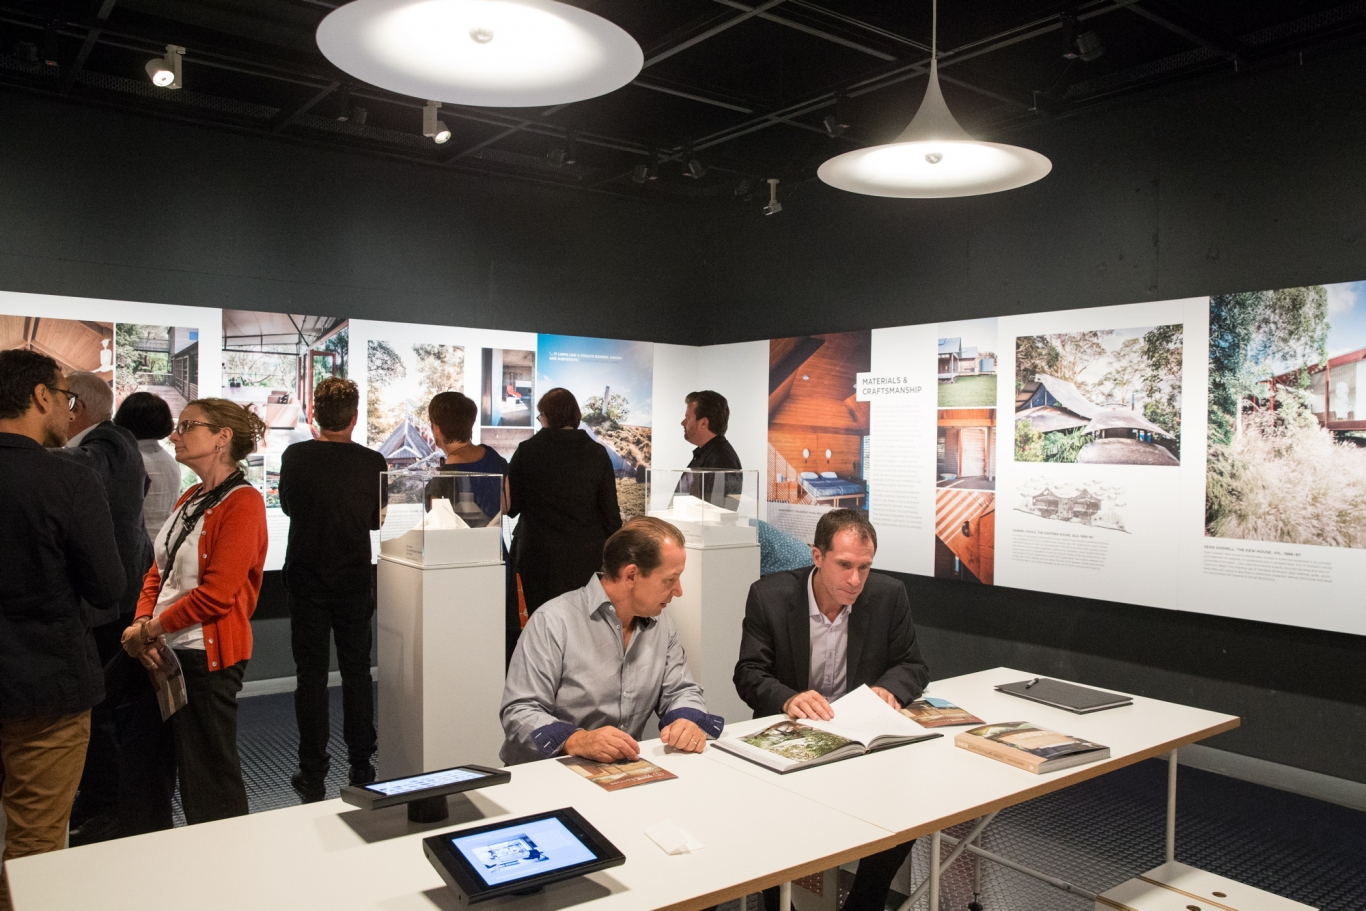 This is a photograph of a colleciton of people inside the exhibition looking at panels, sitting at tables and reading books or looking at iPads